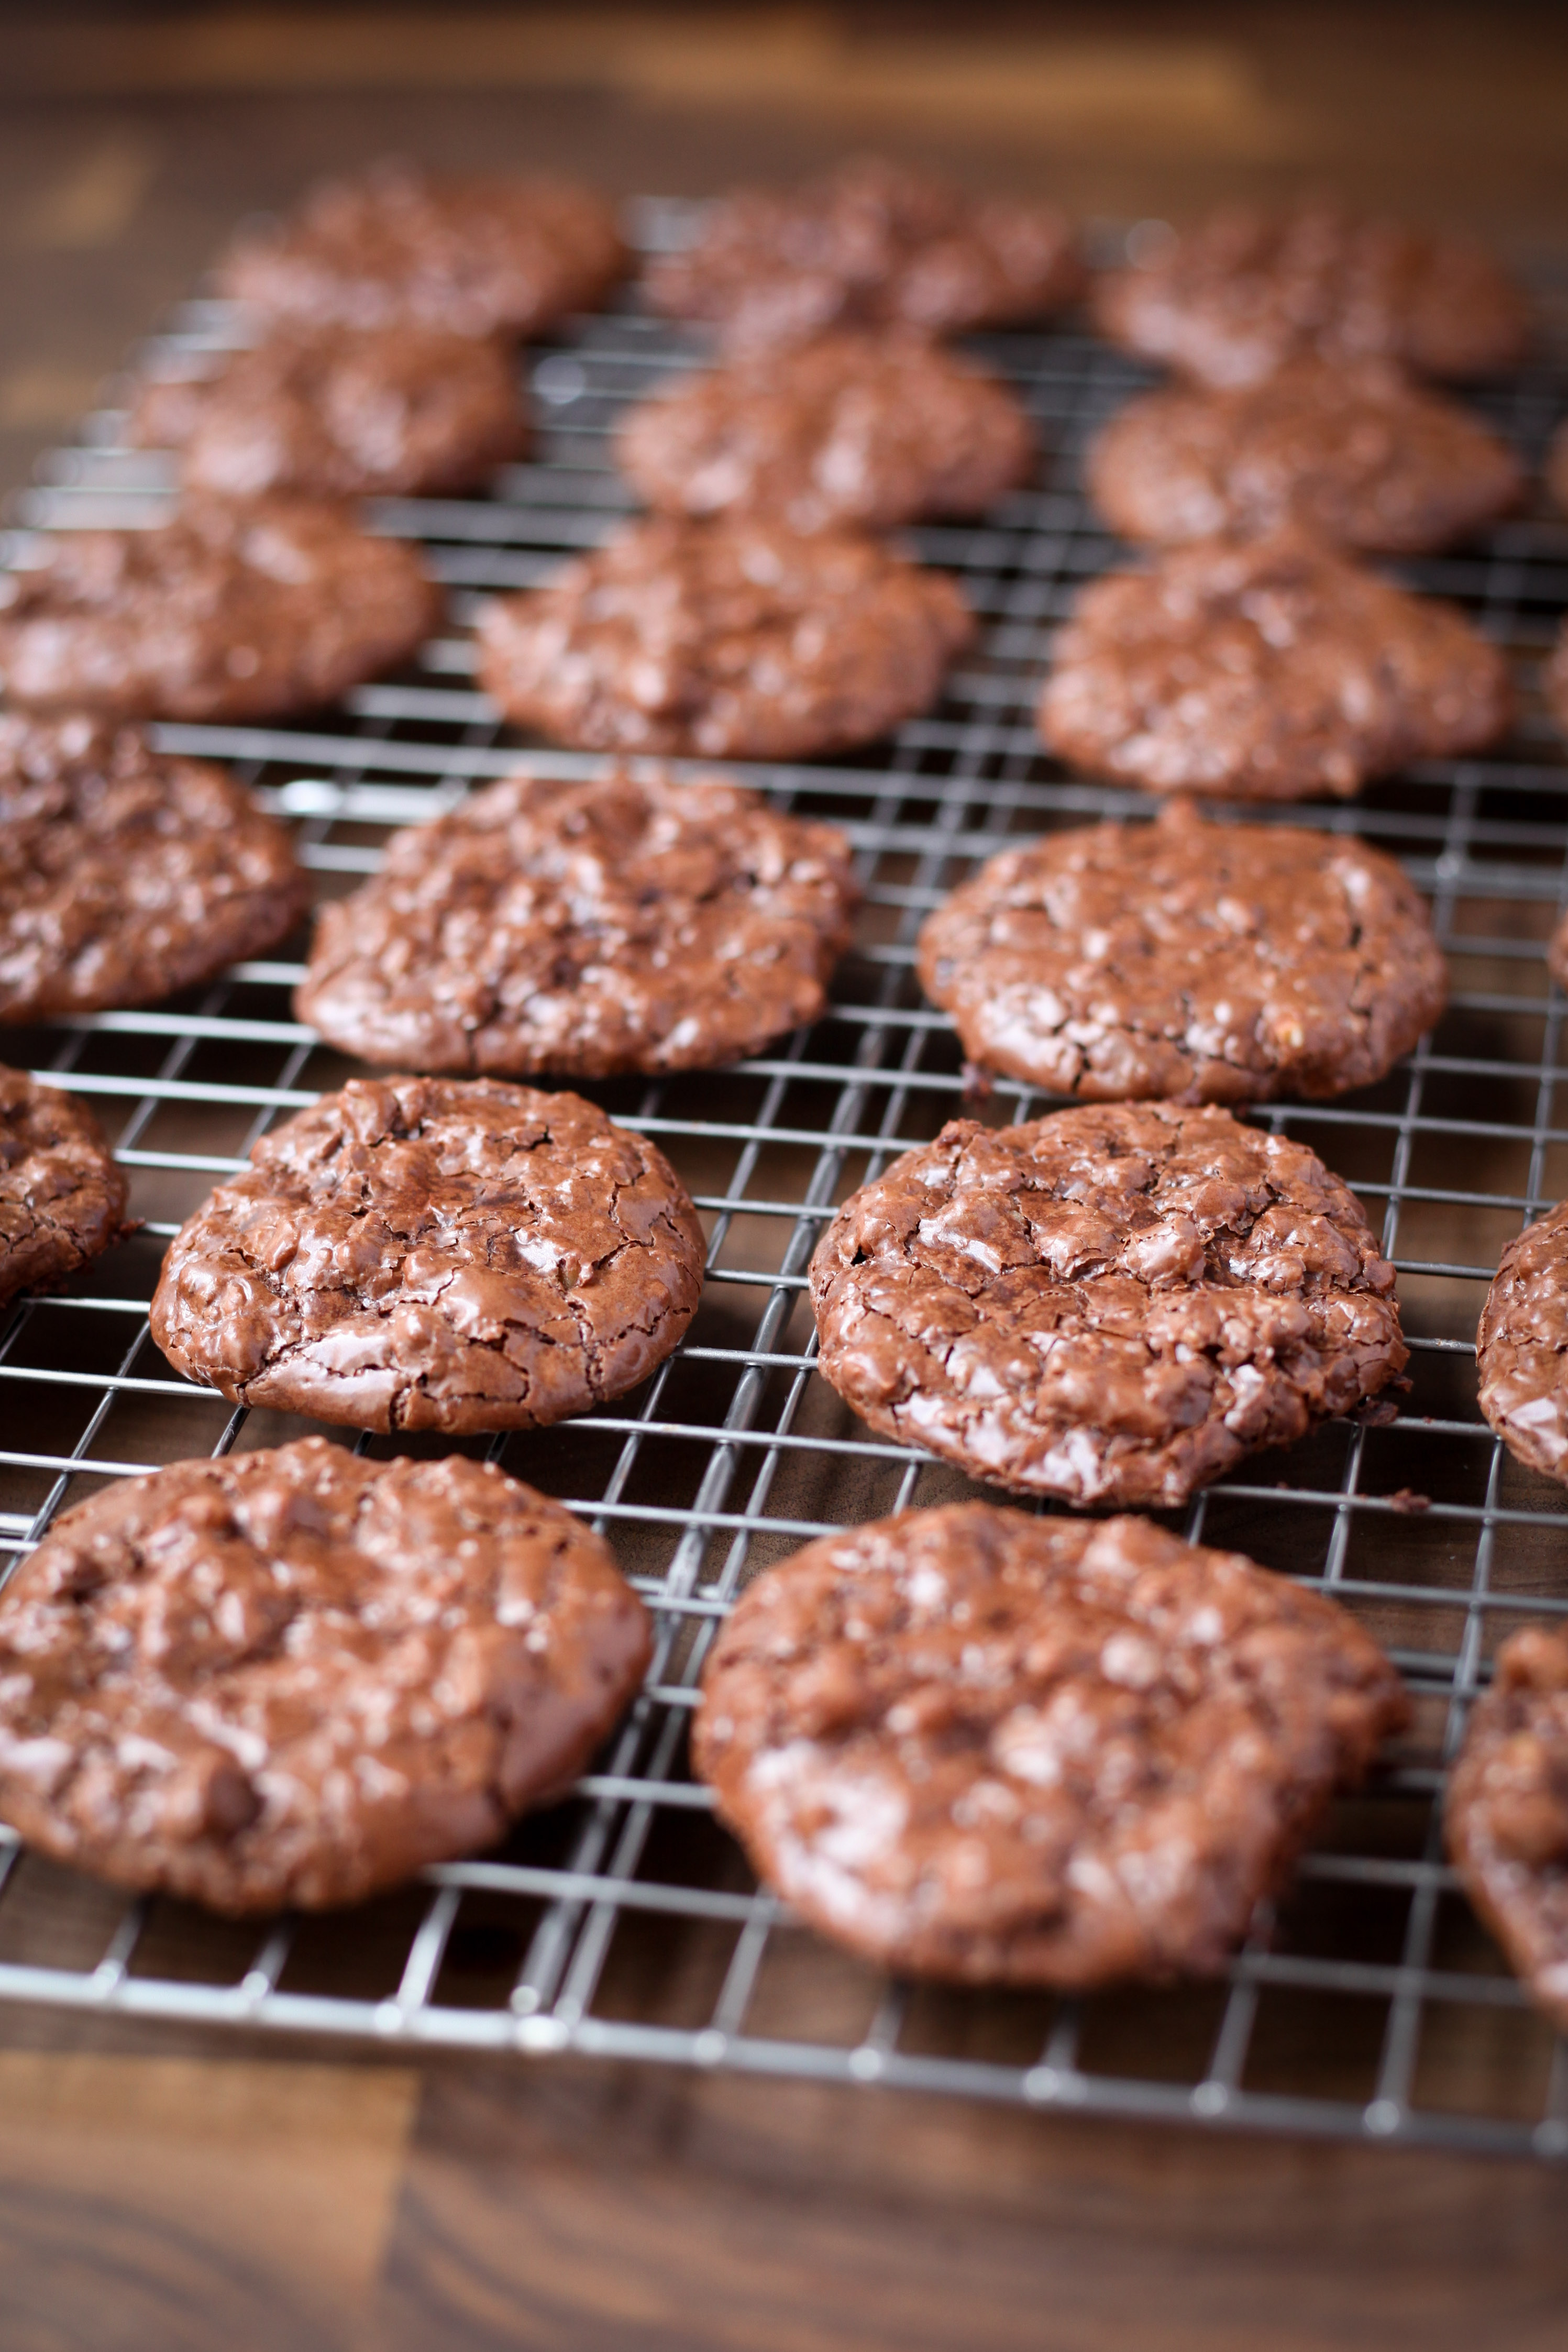 Flourless Chocolate Walnut Cookies | amodestfeast.com | @amodestfeast